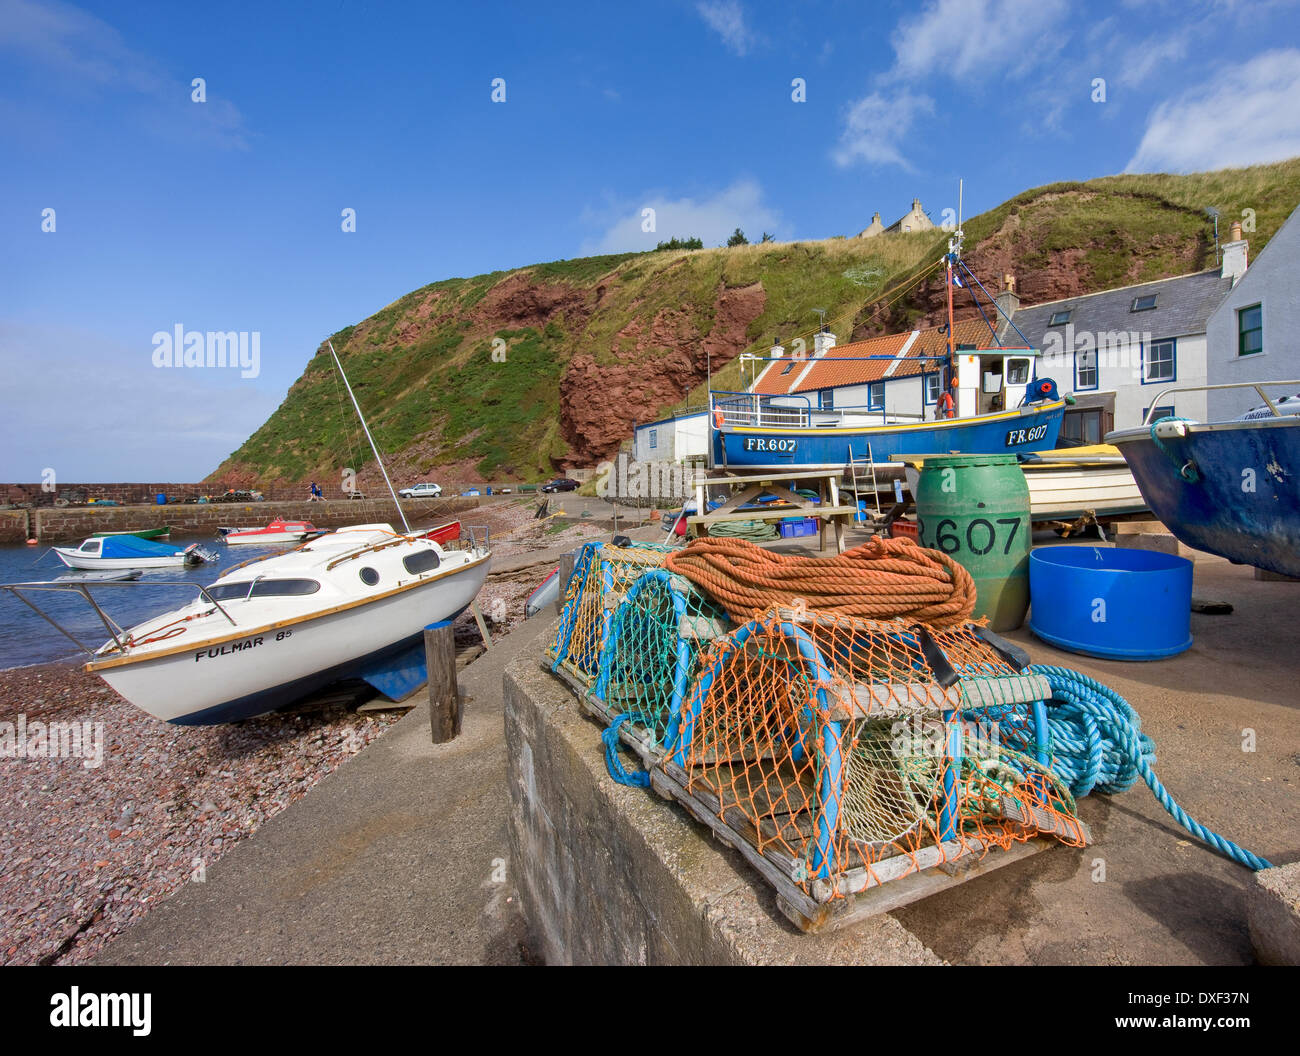 The Quaint harbour and village of Pennan, film location for the 1980s movie 'Local Hero' - Stock Image